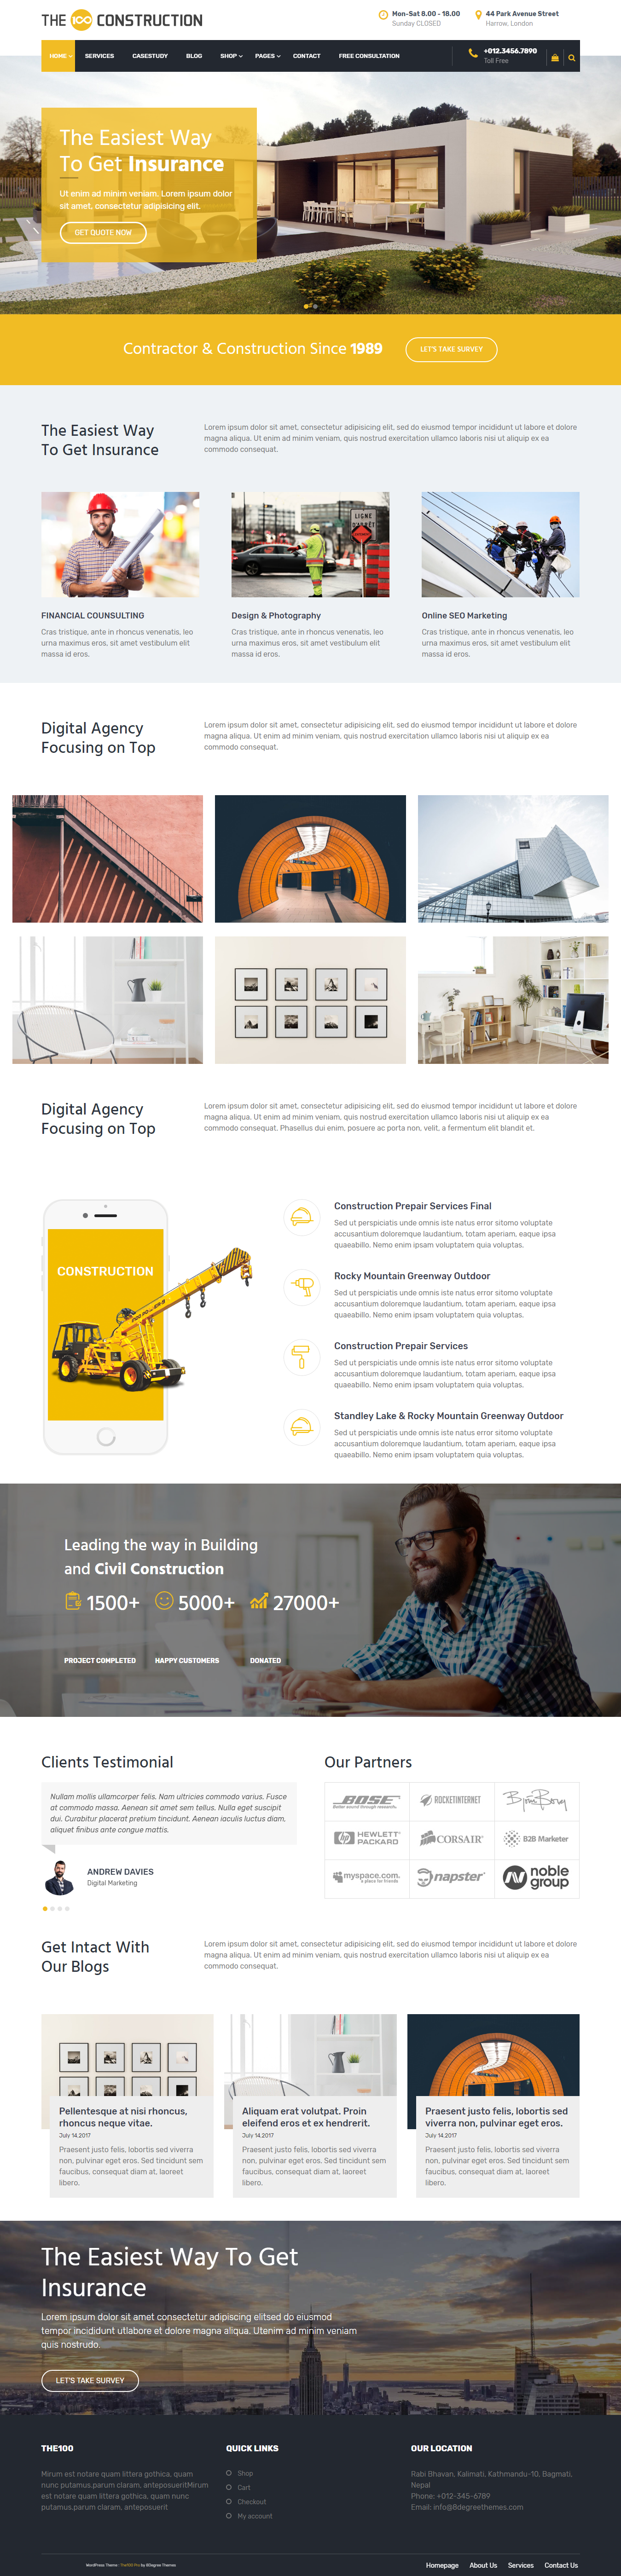 The100 Pro - Best Premium Construction Business Company WordPress Themes and Templates